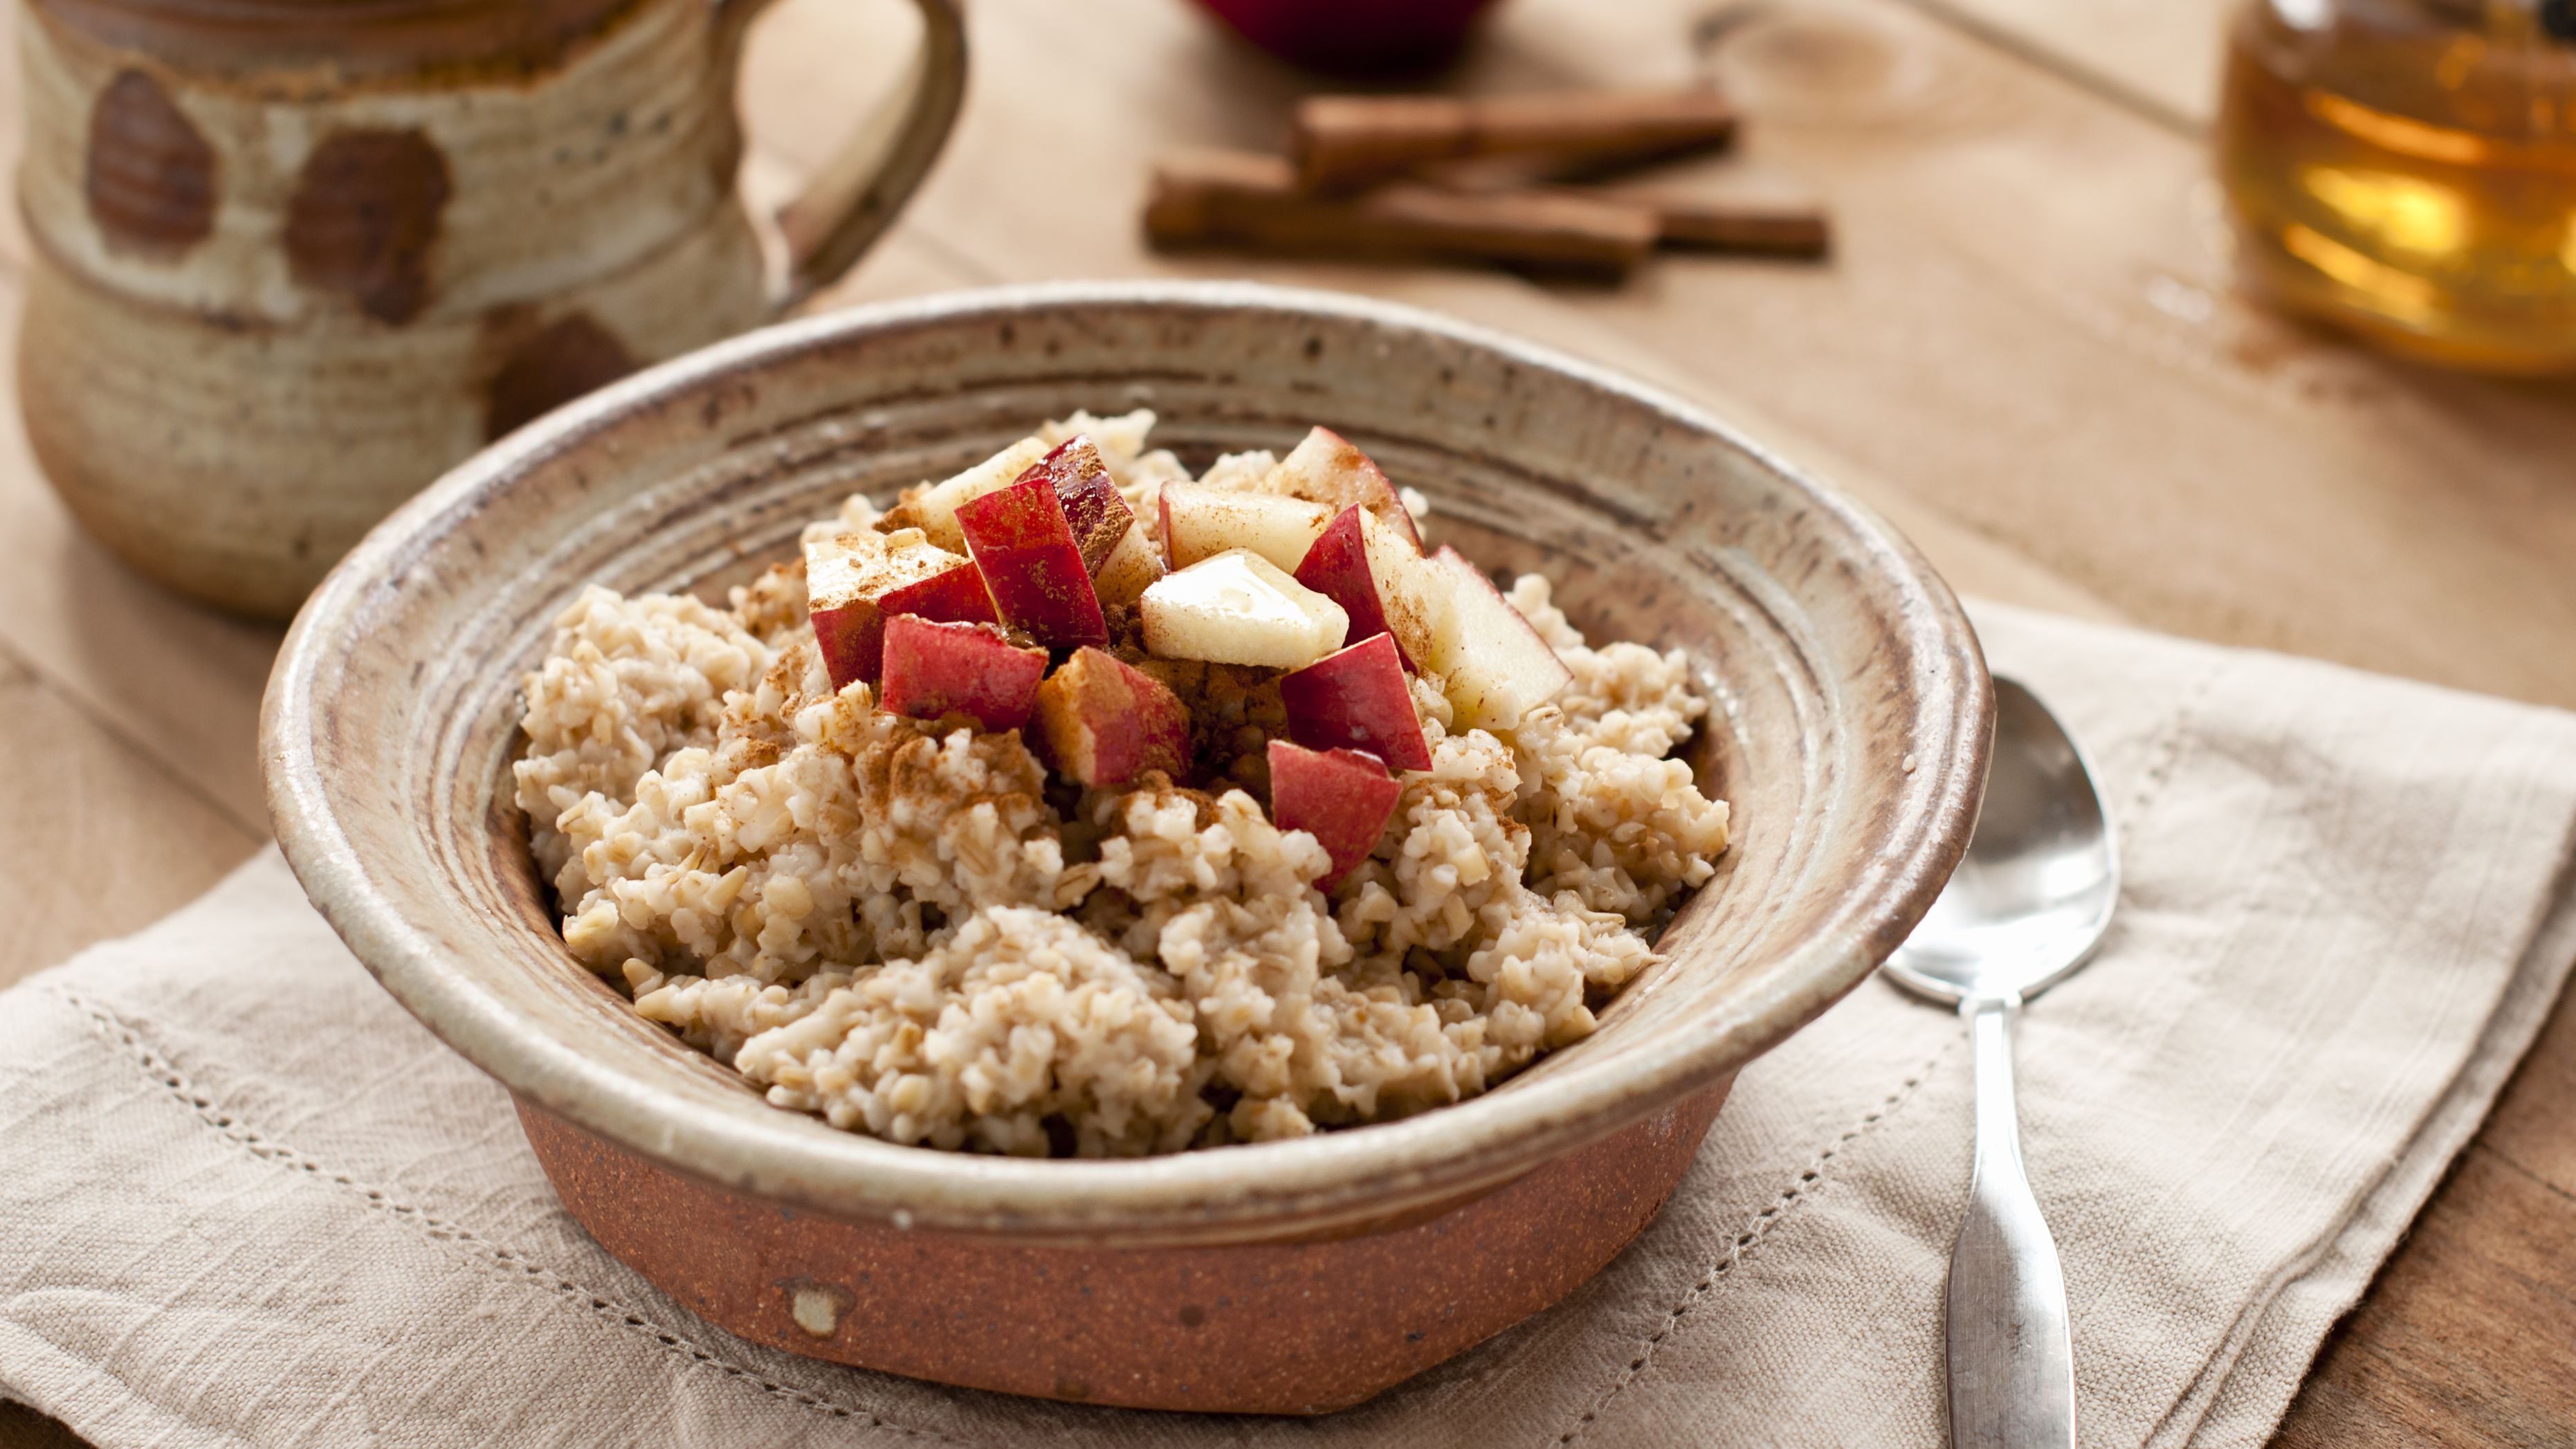 Raw Vegan Oatmeal Breakfast With Cinnamon And Apples